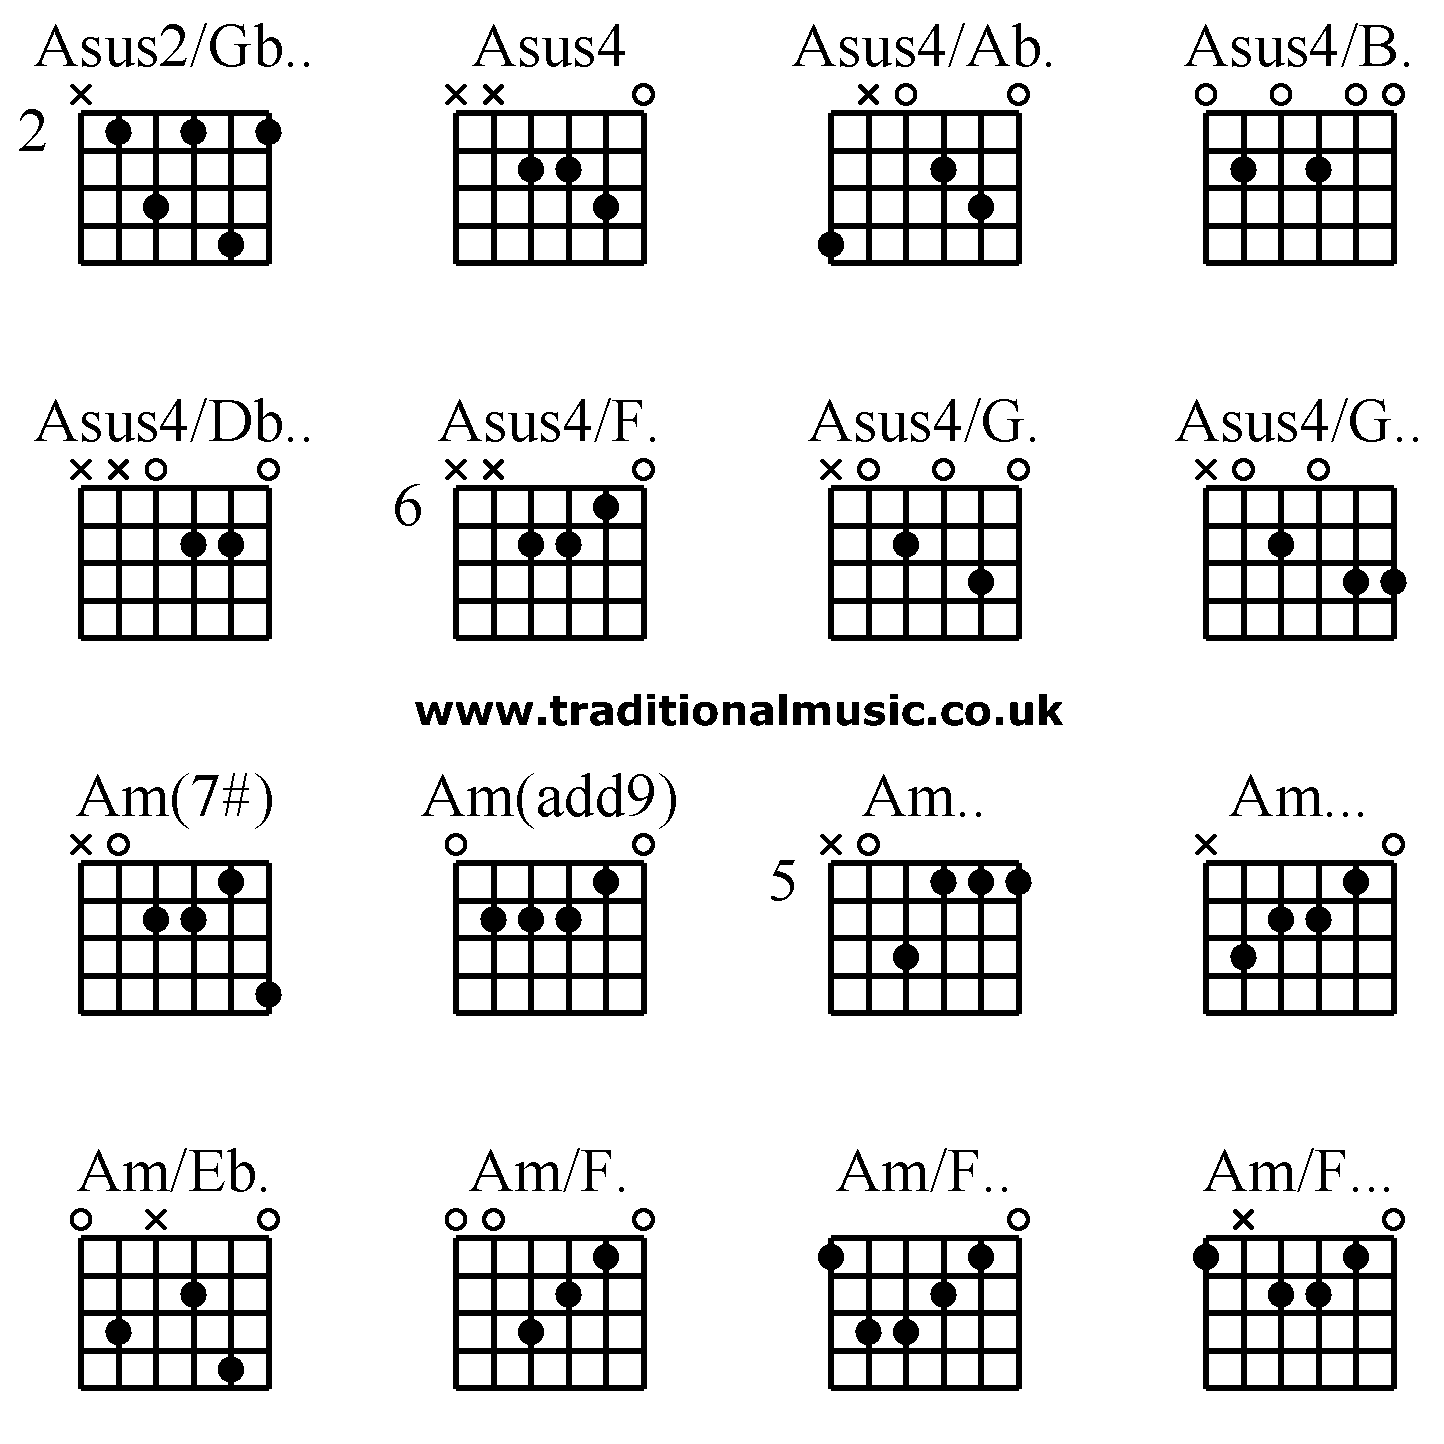 Advanced guitar chords asus2gb asus4 asus4ab asus4b asus4 advanced guitar chords asus2gb asus4 asus4ab asus4 hexwebz Image collections